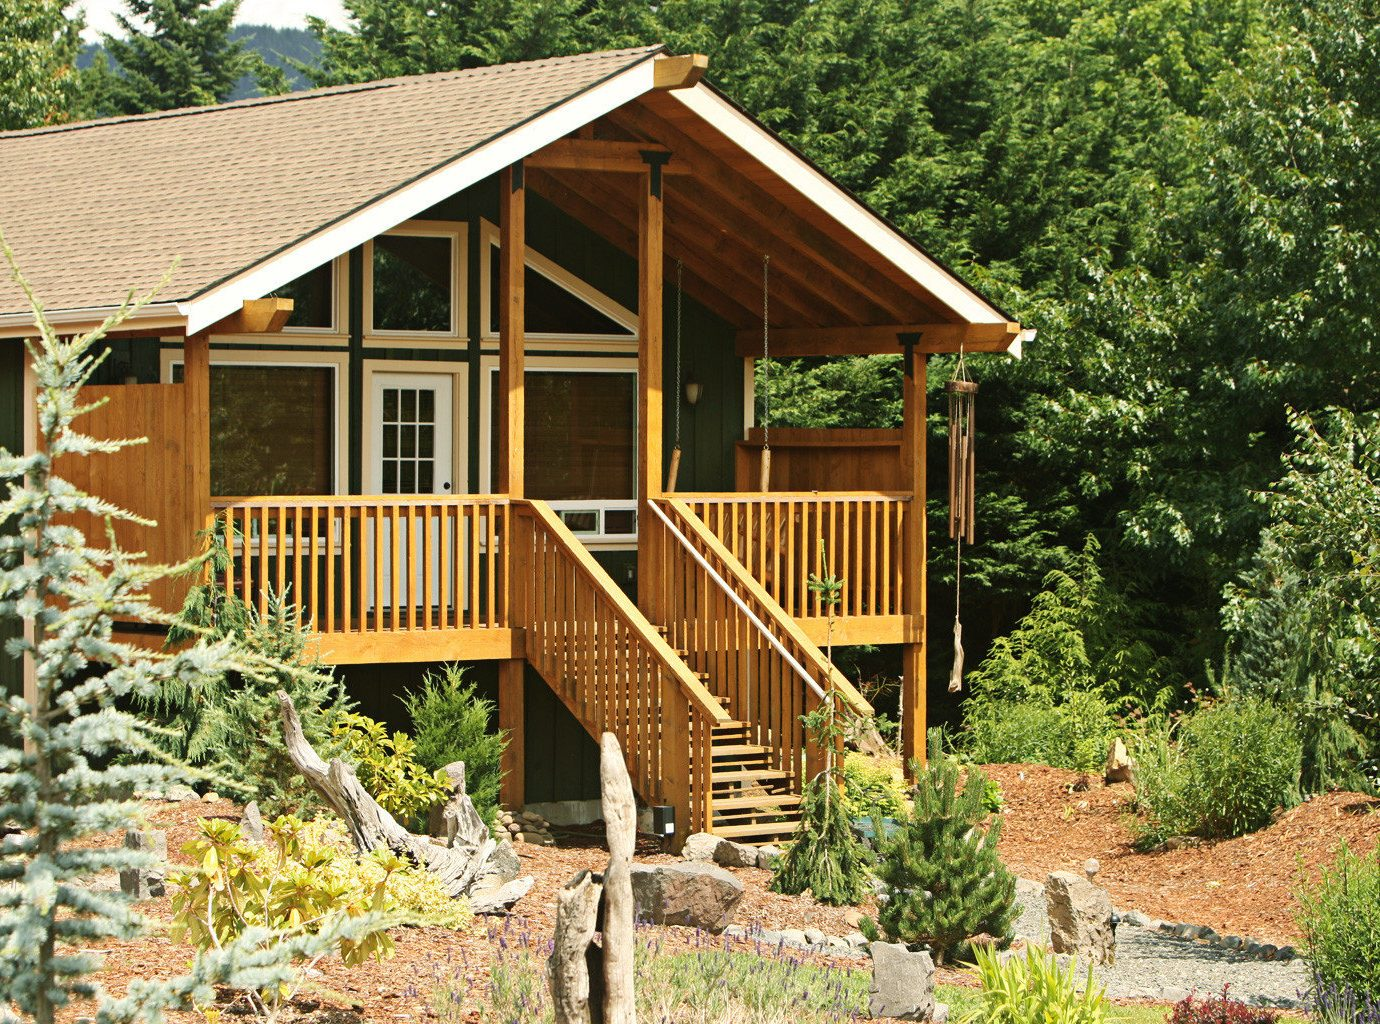 Cabin Exterior tree house building wooden log cabin rock shed yellow outdoor structure cottage Garden home backyard hut bushes surrounded